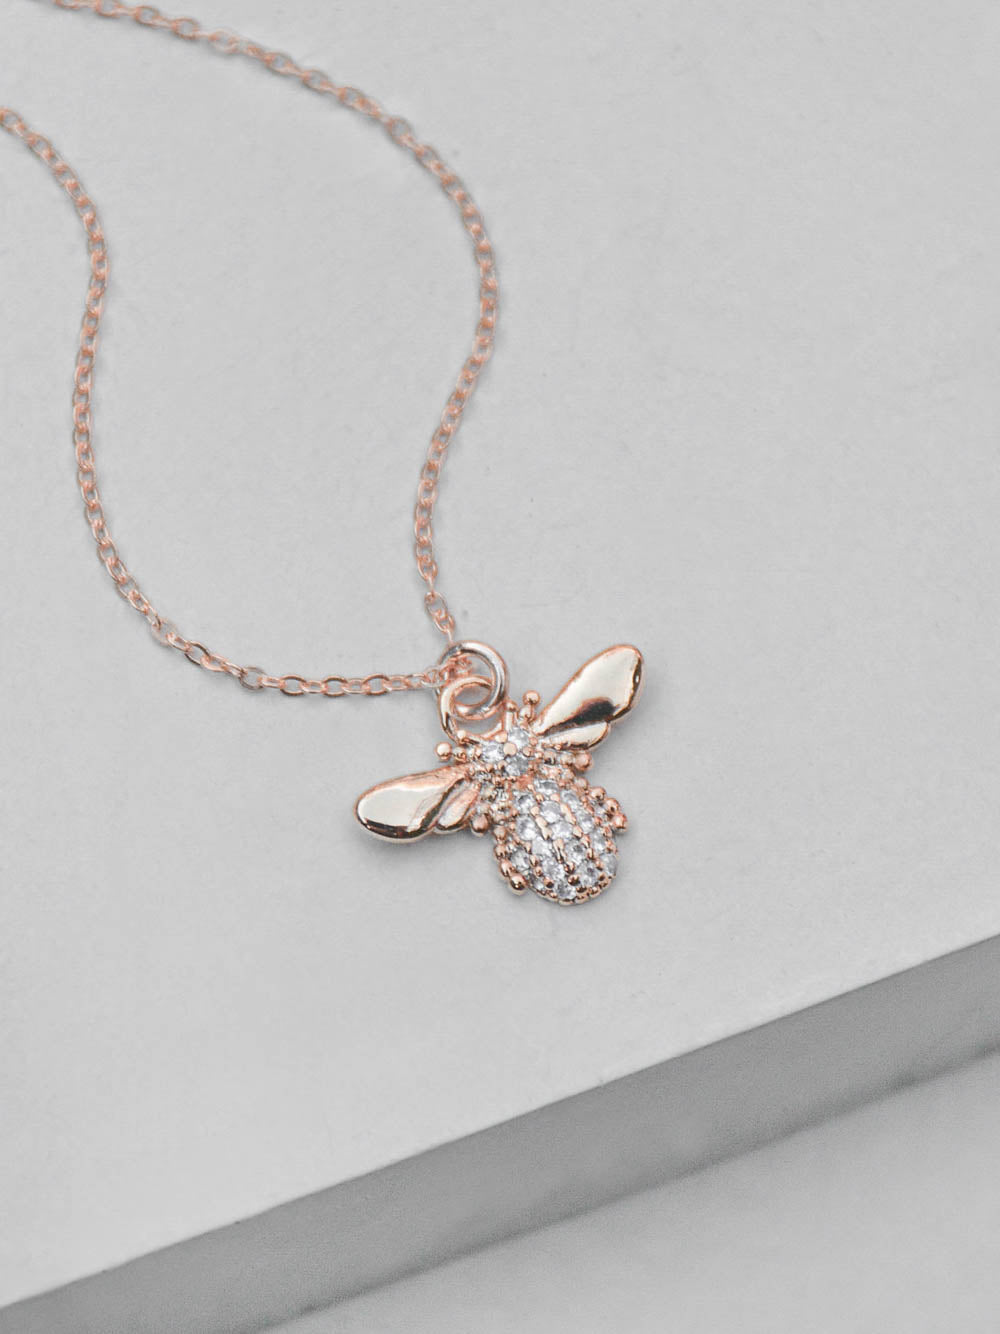 Rose Gold CZ Bumblebee Necklace by The Faint Hearted Jewelry